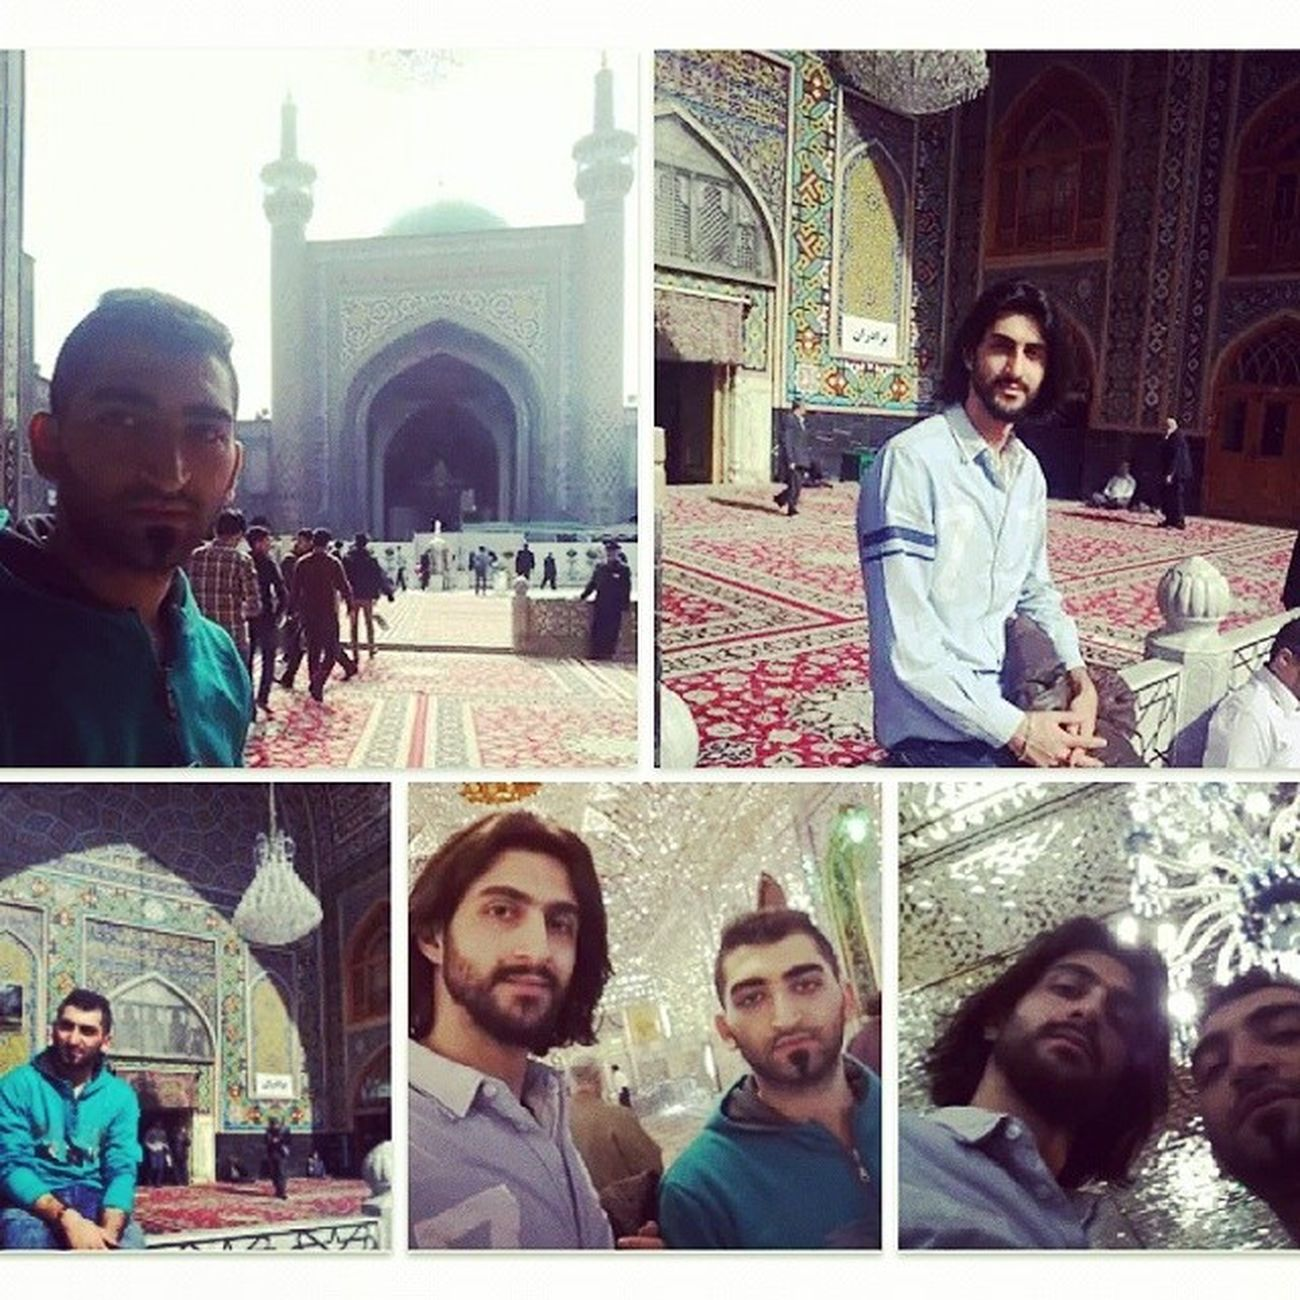 Iran Mashhad Imamriza Wonderful place 2014 ....